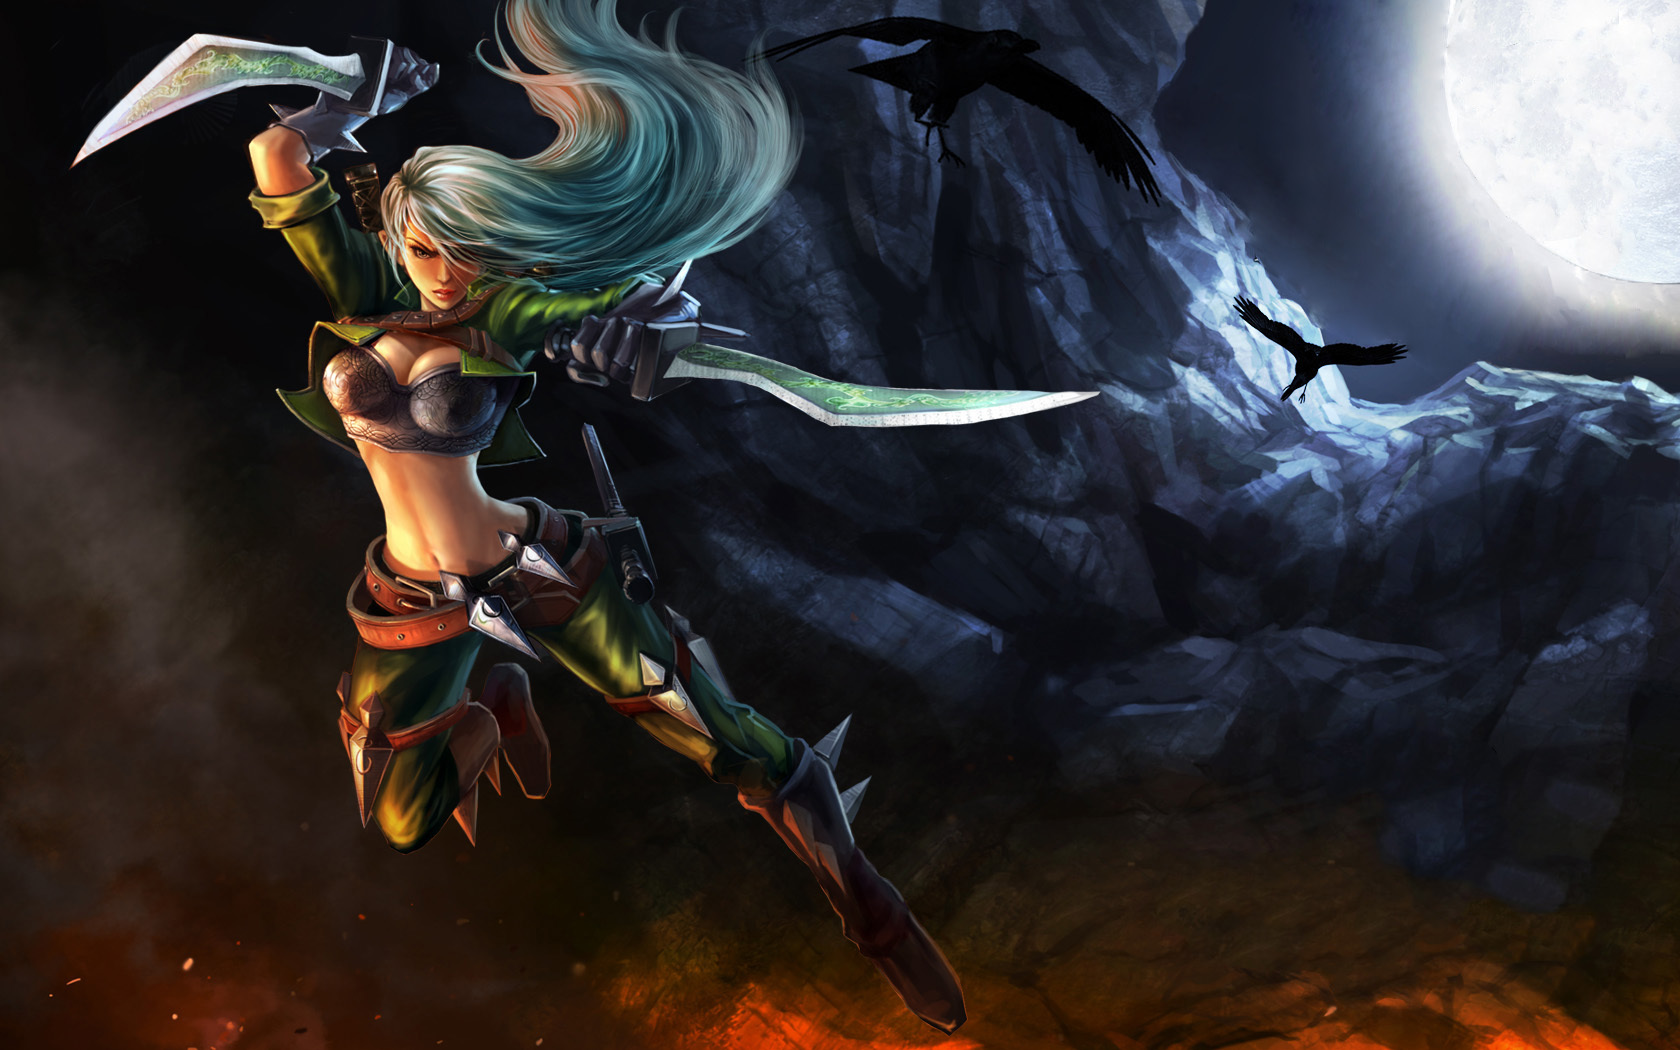 League of Legends Res: 1680x1050 / Size:410kb. Views: 607633